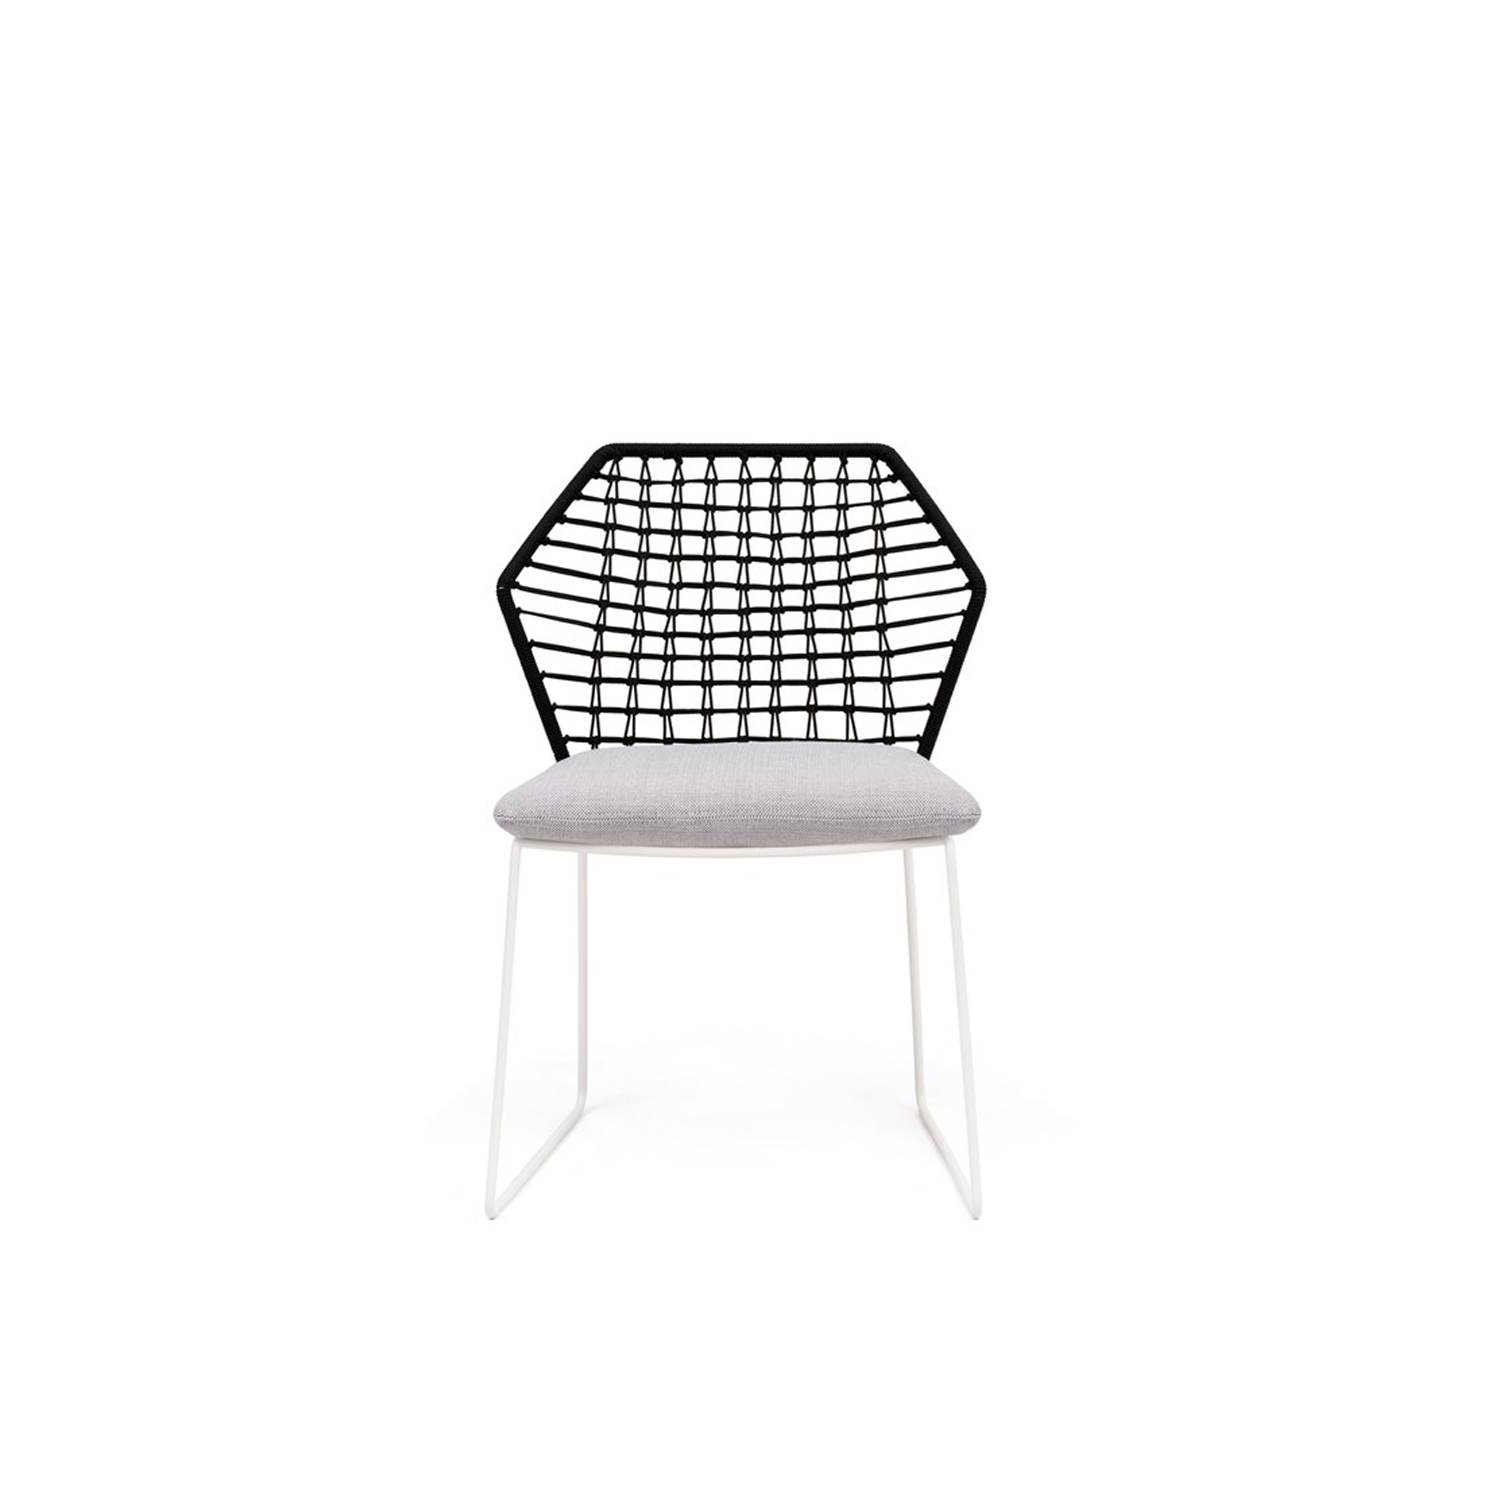 New York Soleil Garden Chair - New York Soleil is a garden chair with removable fabric cover, part of the homonymous collection.  The New York Soleil outdoor collection is a line of exclusive woven seating made entirely by hand. New York Soleil is the product of careful research into materials and the desire to maintain the unique original design. Woven nautical cords of different colours softly cover the painted metal rod structure. The ergonomic cushion is covered in a quick-drying, non-absorbent technical fabric, and its superior performance in the Martindale test guarantees abrasion resistance as well as hygienic breathability. In 2020 the collection adds a new element: the Lounge Armchair.  New York Soleil embodies outdoor living with a casual style and colourful charm. It is available in different blends and solid colours. The collection includes a sofa, a lounge armchair, an armchair, a pouf, a chair with or without armrests and a stool. Fully removable covers.  Additional removable cover is available, please enquire for prices.  Materials Structure in 16 mm wire drawn for lounge armchair; in 12 mm wire drawn for sofa, armchair and pouf; in 11 mm wire drawn for chair with or without armrests and for stools. For all elements, the structure is covered with plaiting of 4 mm diameter of polyester ropes. For sofa, armchair, chairs and stools, the seat cushion is filled with a special 30 water-draining polyurethane, covered with polyester fiber 300gr/sqm on 100% polyester lining. Lounge armchair's seat cushion is made with flexible glass fiber slats inserted in the core of variable density polyurethane foam, covered with 600 gr/sqm polyester fiber and clothed with water-repellent heat-sealed fabric. Back and armrests cushions are in polyester fiber in TNT fabric cover, clothed with water-repellent heat-sealed for fabric provided with a breathable band. | Matter of Stuff